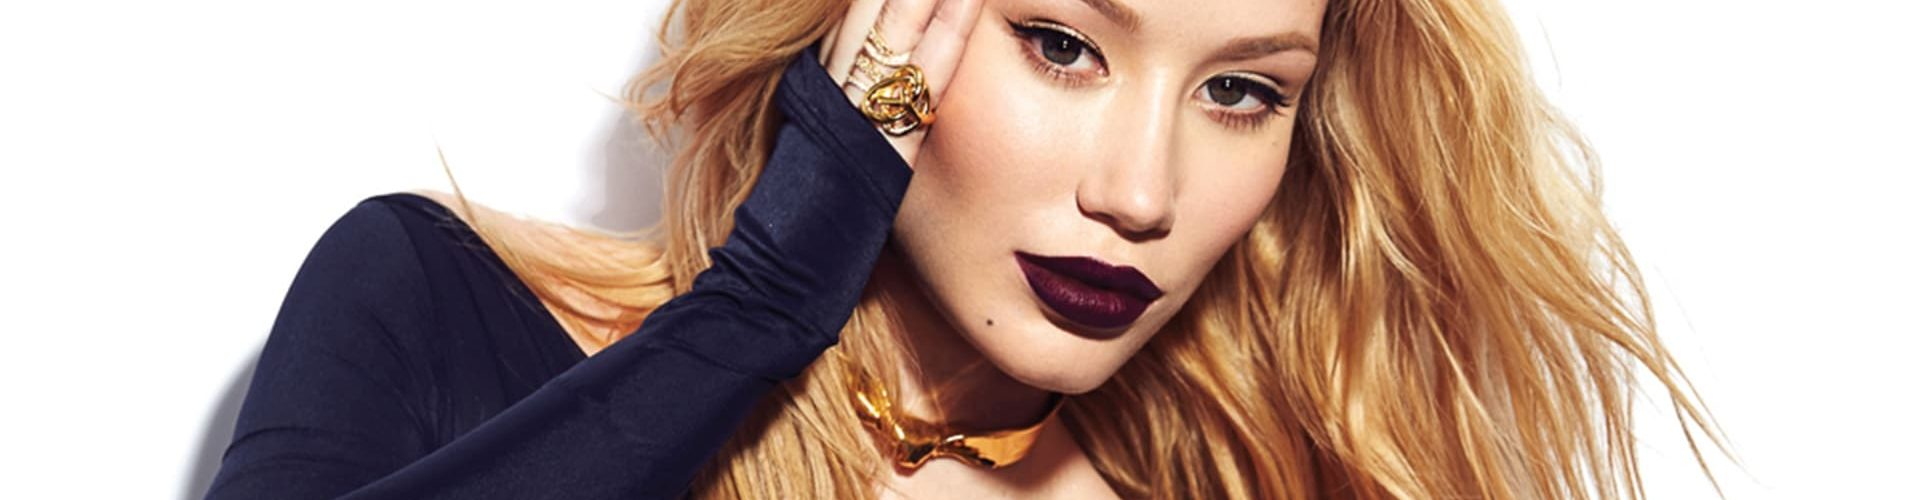 Iggy Azalea Wallpaper & Iggy Themes Iggy Azalea Wallpaper & Iggy Kream Theme